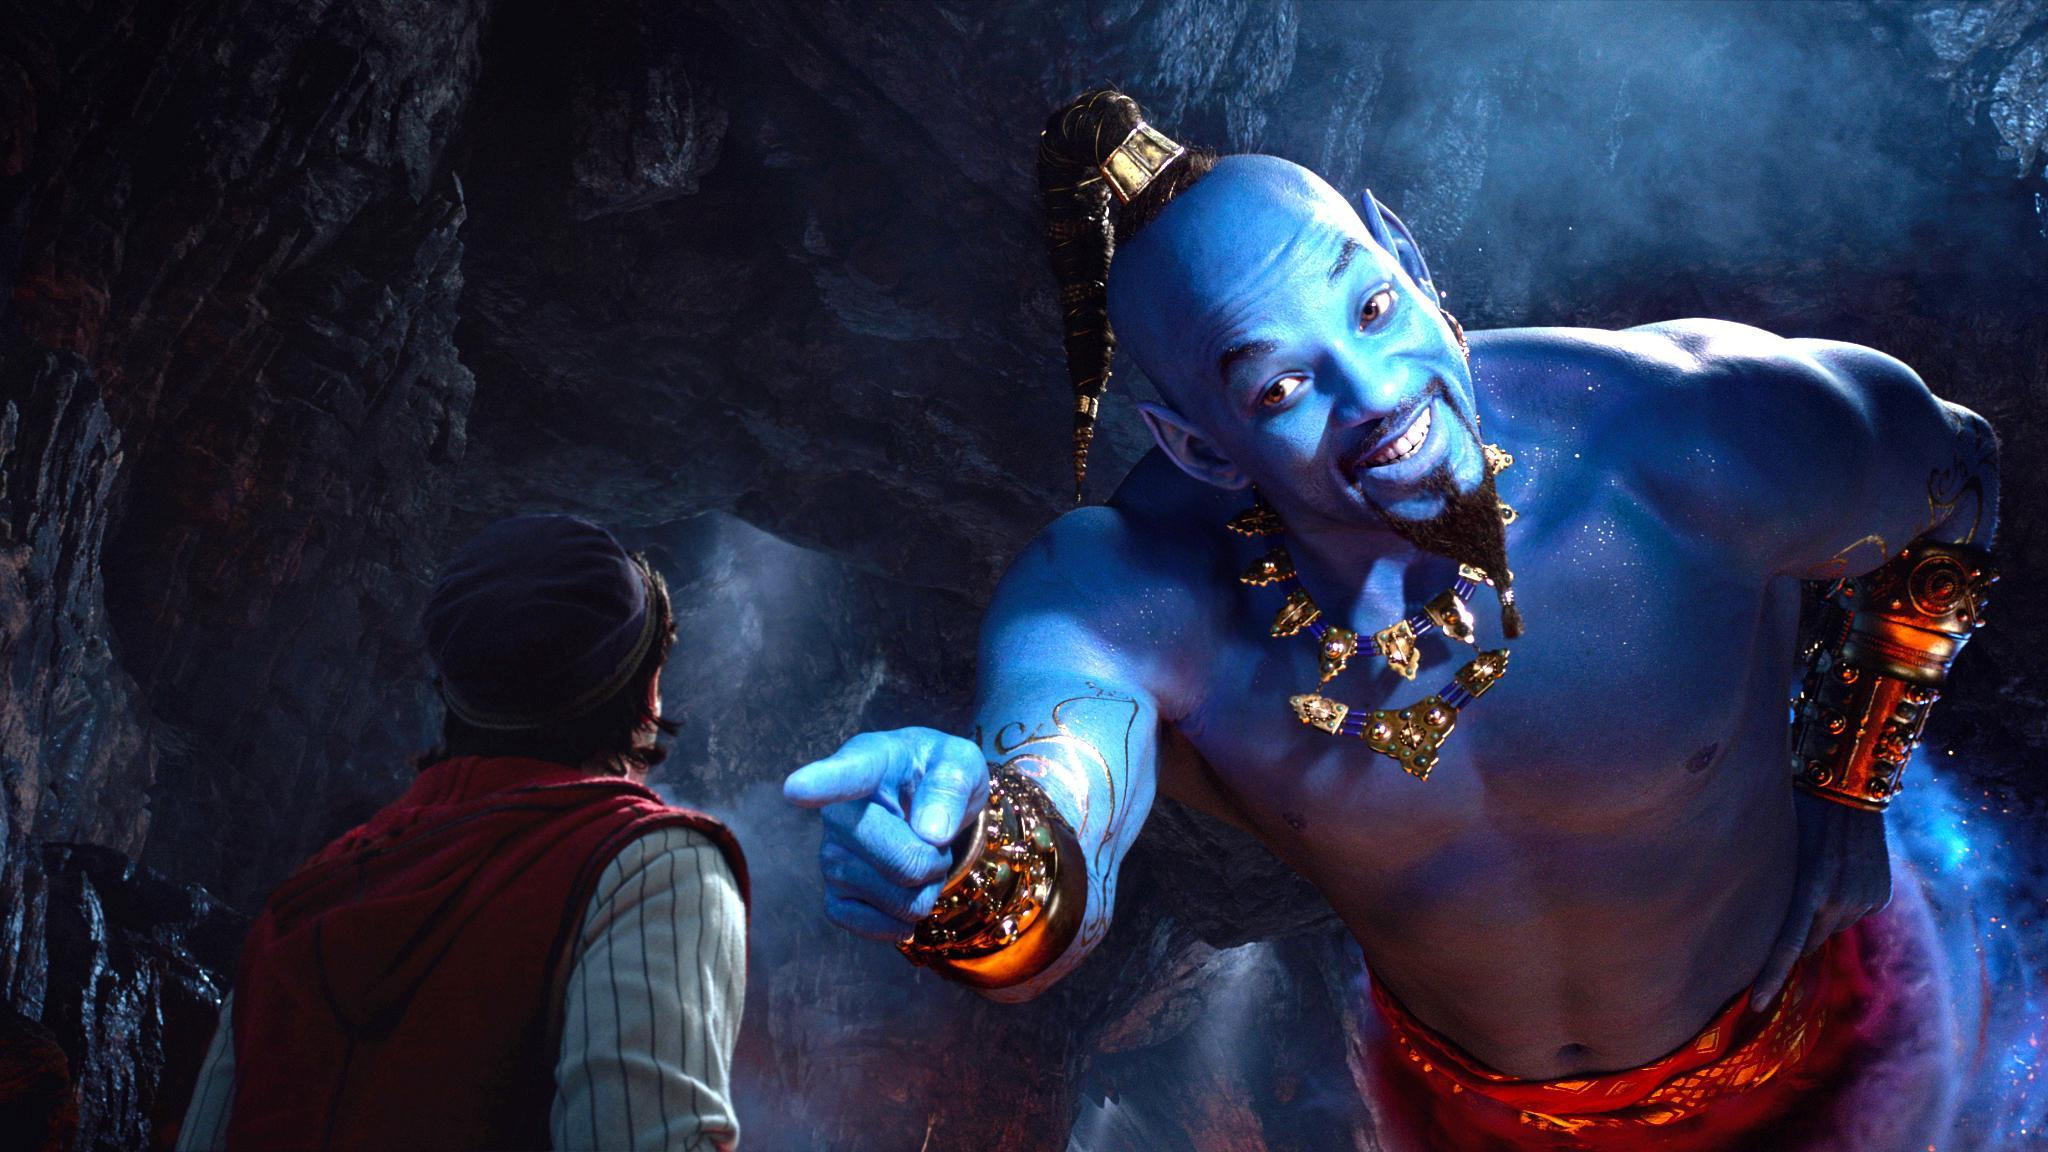 Aladdin' Is 2019's Most Uncanny Valley Movie So Far